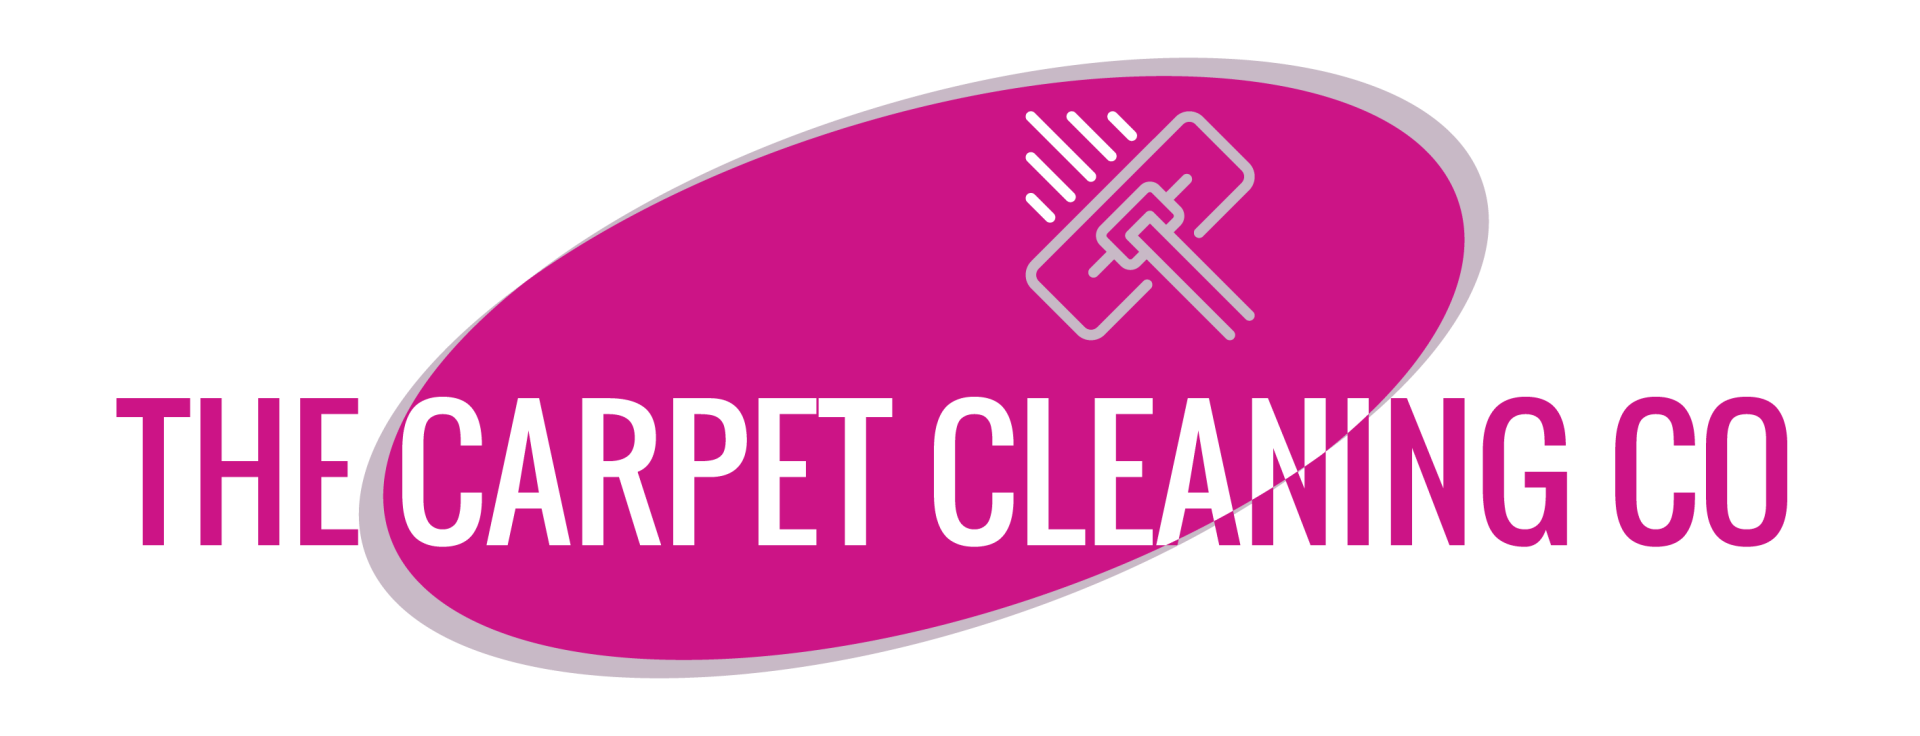 Carpet Cleaning Co logo